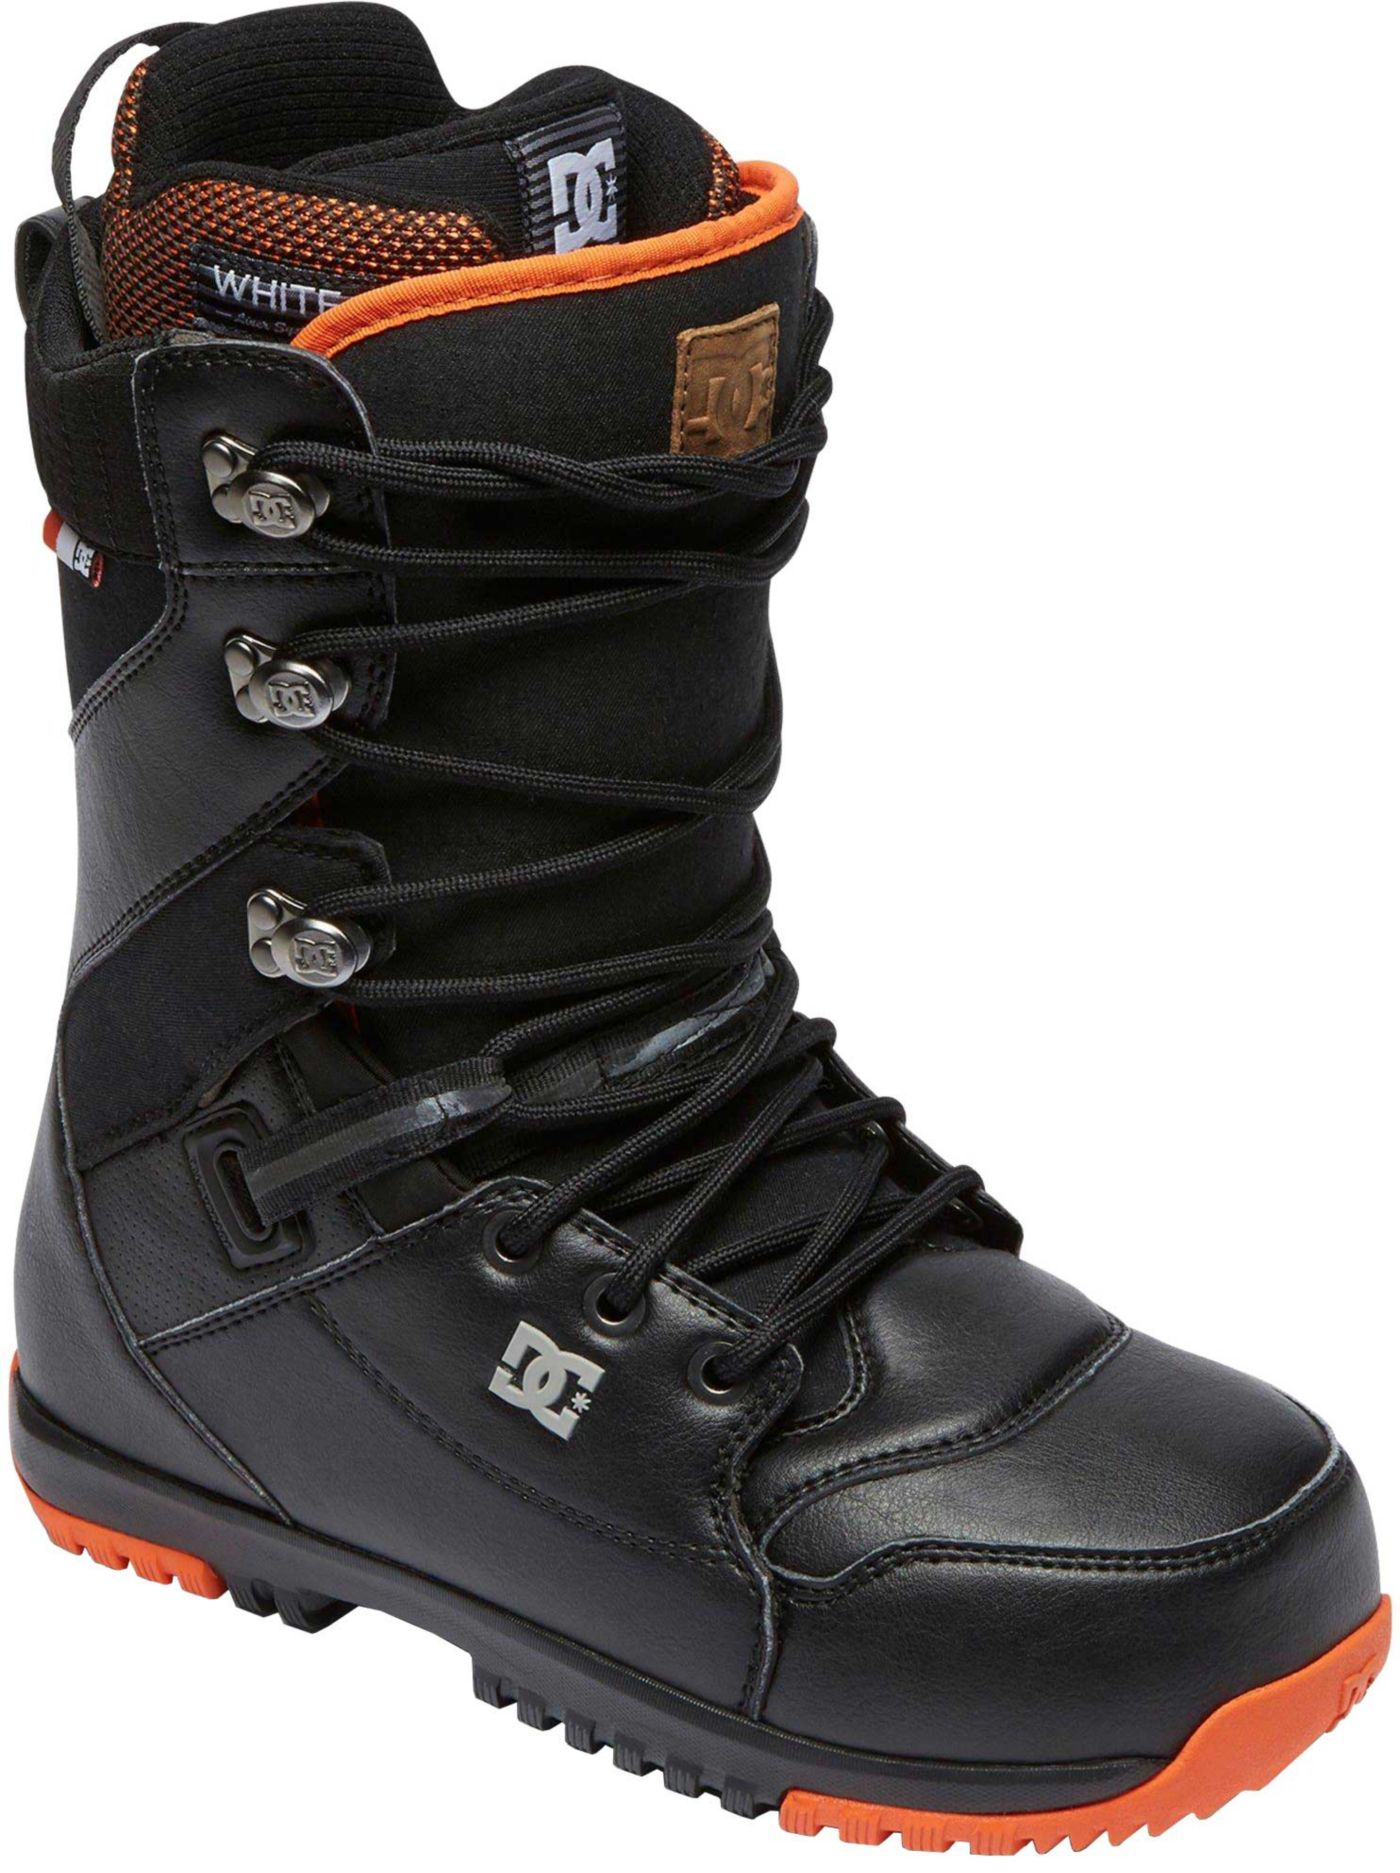 DC Shoes Men's Mutiny Lace-Up 2018-2019 Snowboard Boots